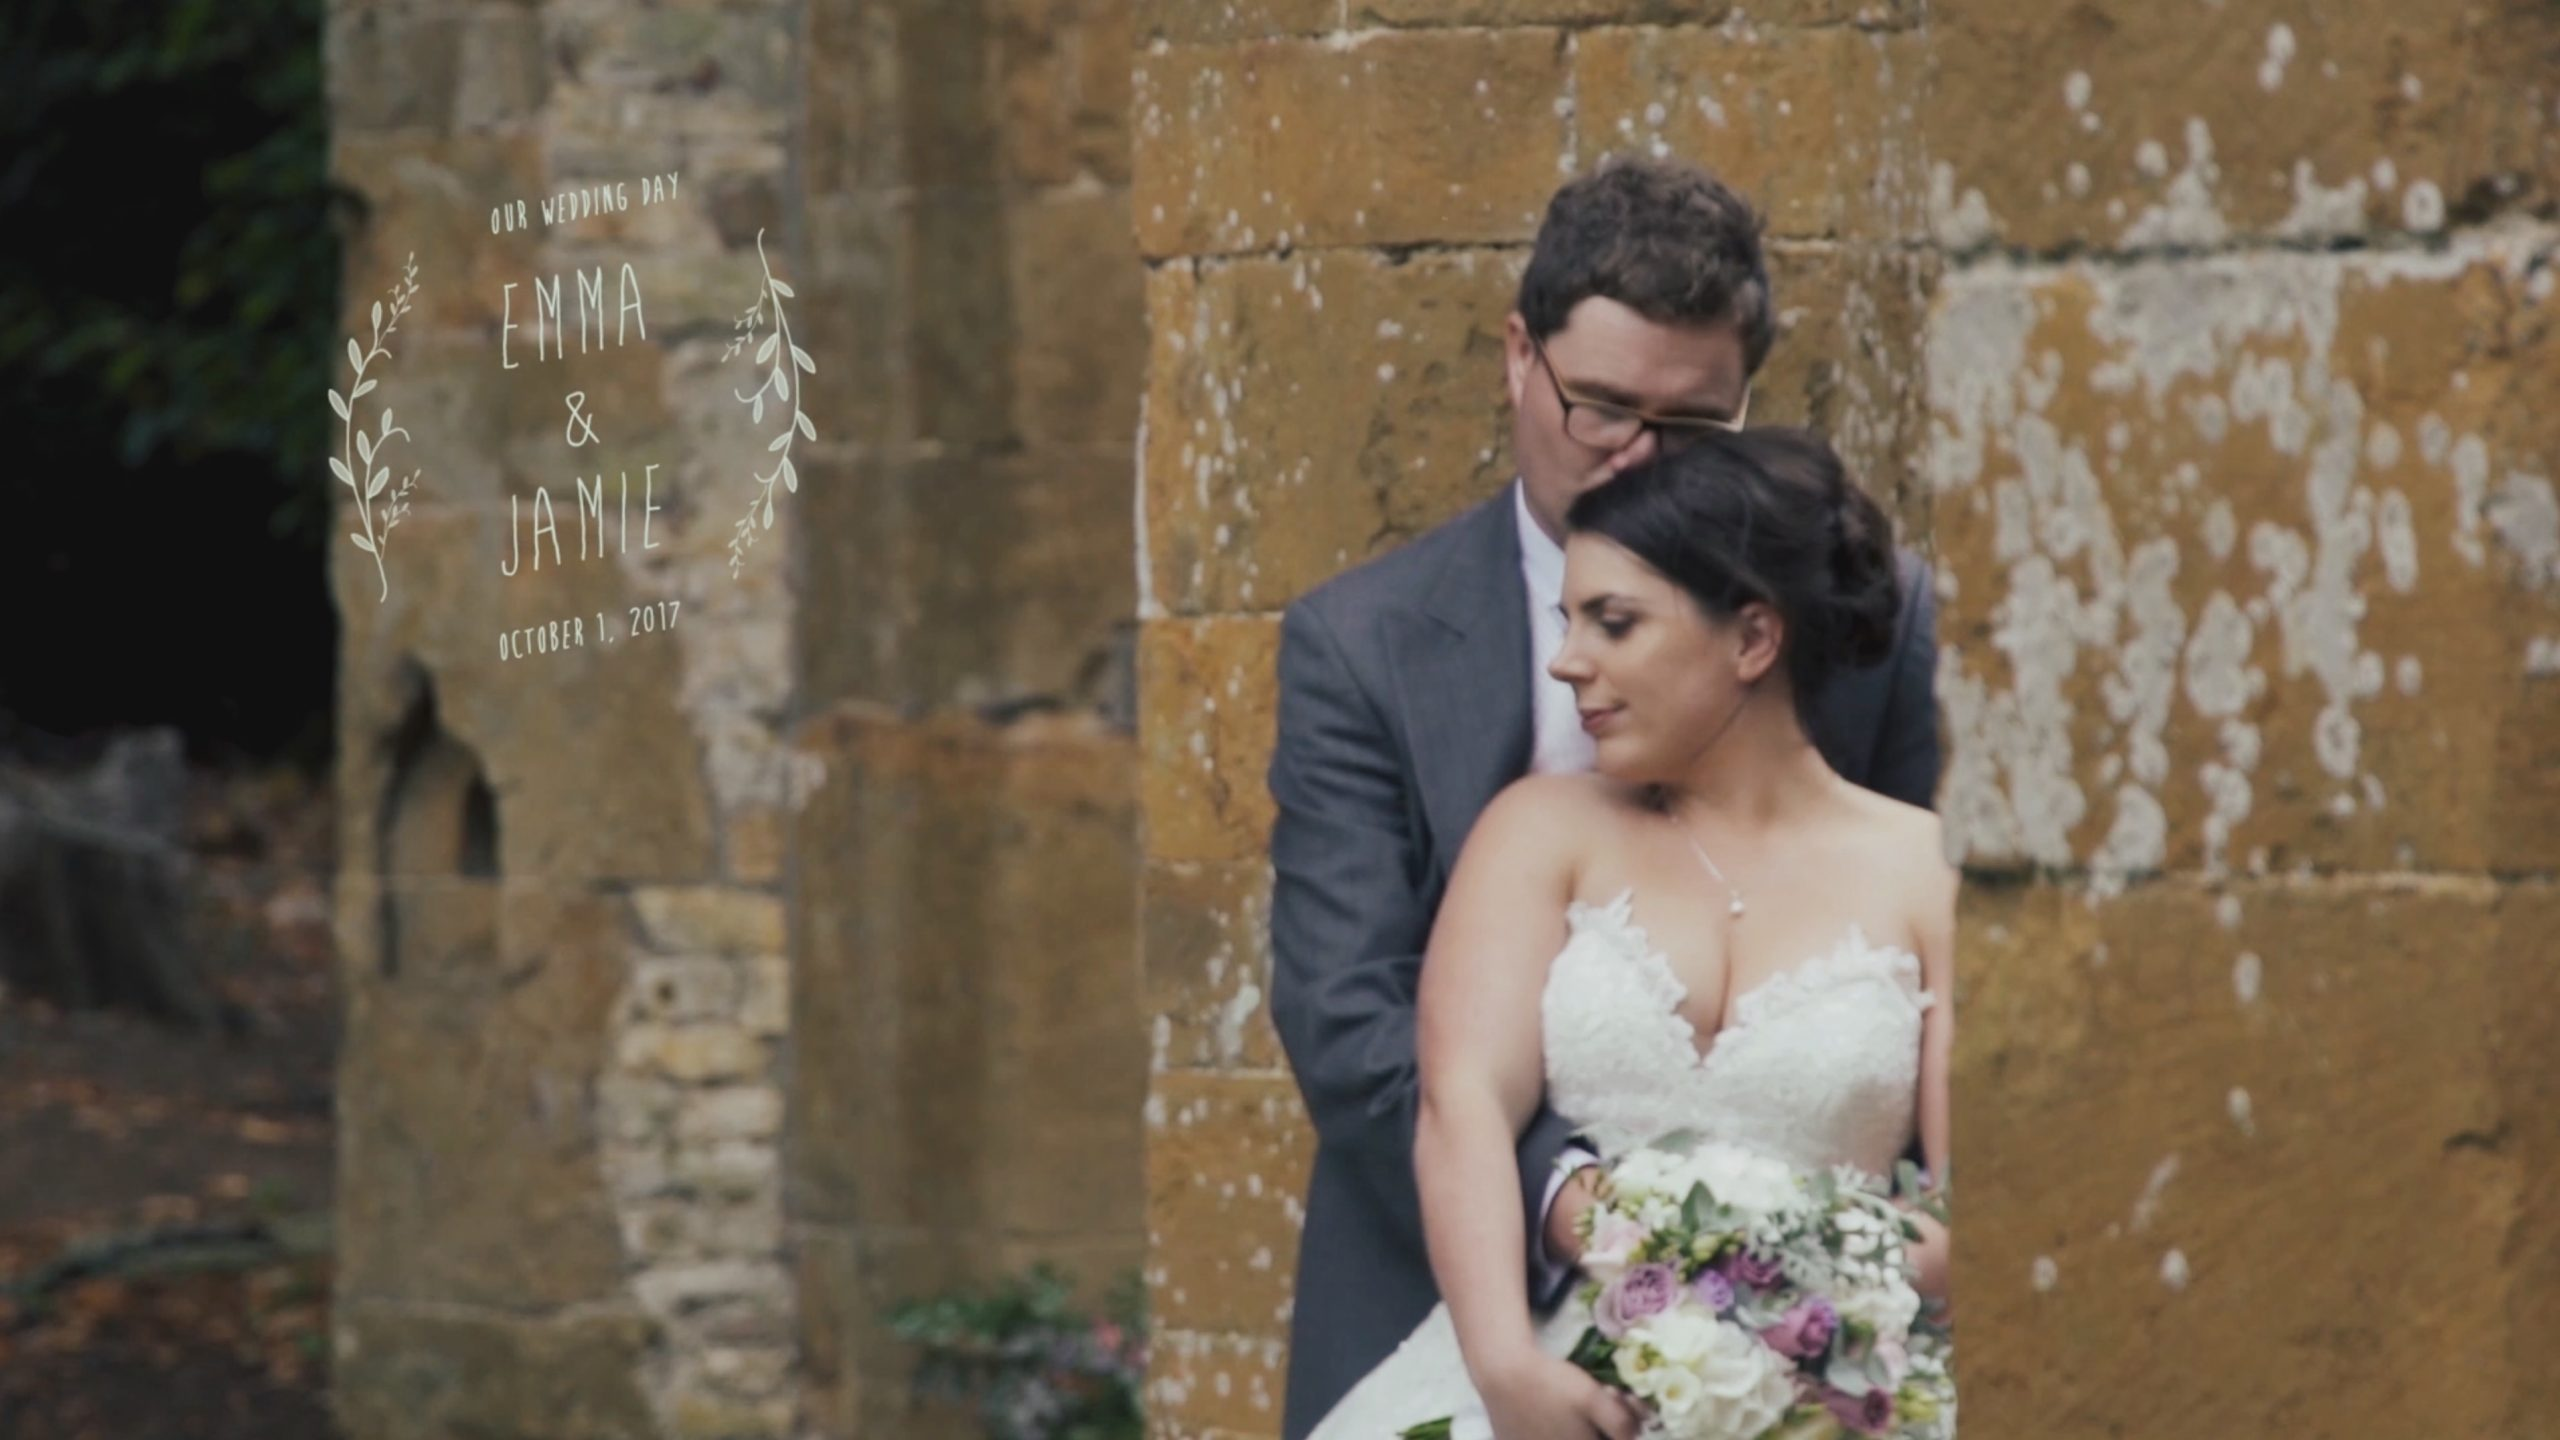 A West Midlands wedding videographer at an Ettington Park wedding